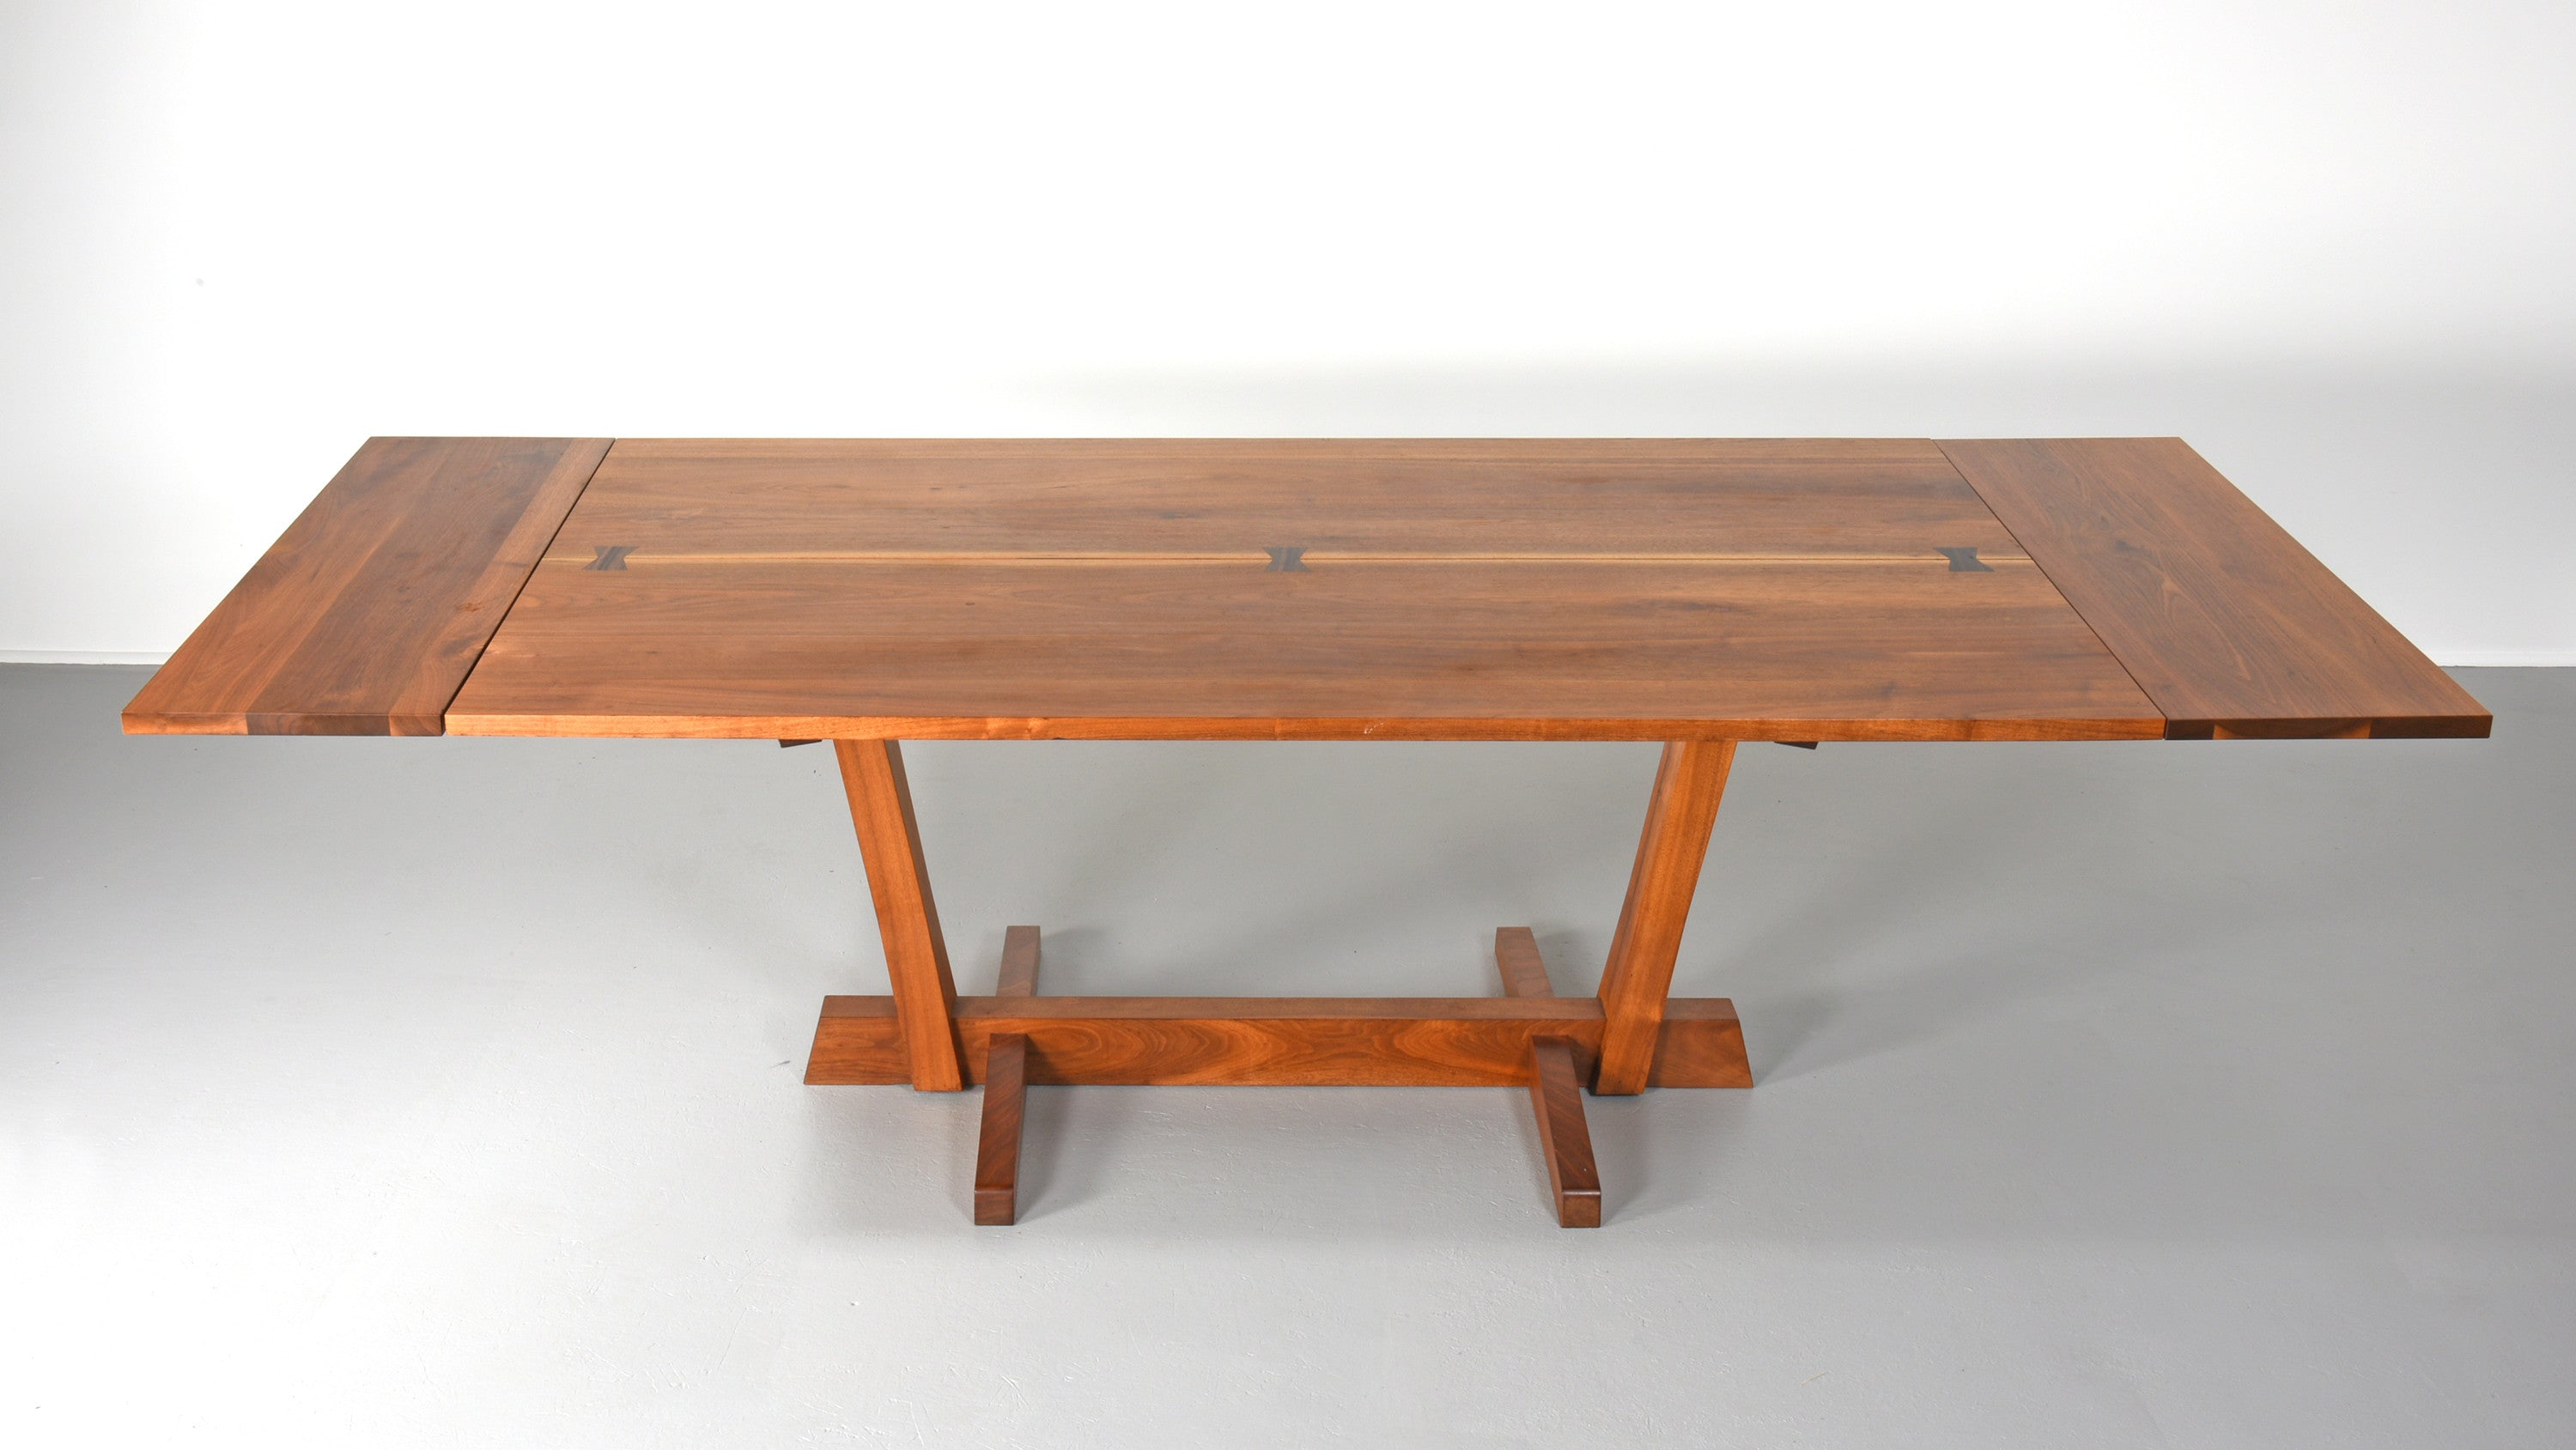 Nakashima Table george nakashima conoid dining table in walnut and rosewood – the